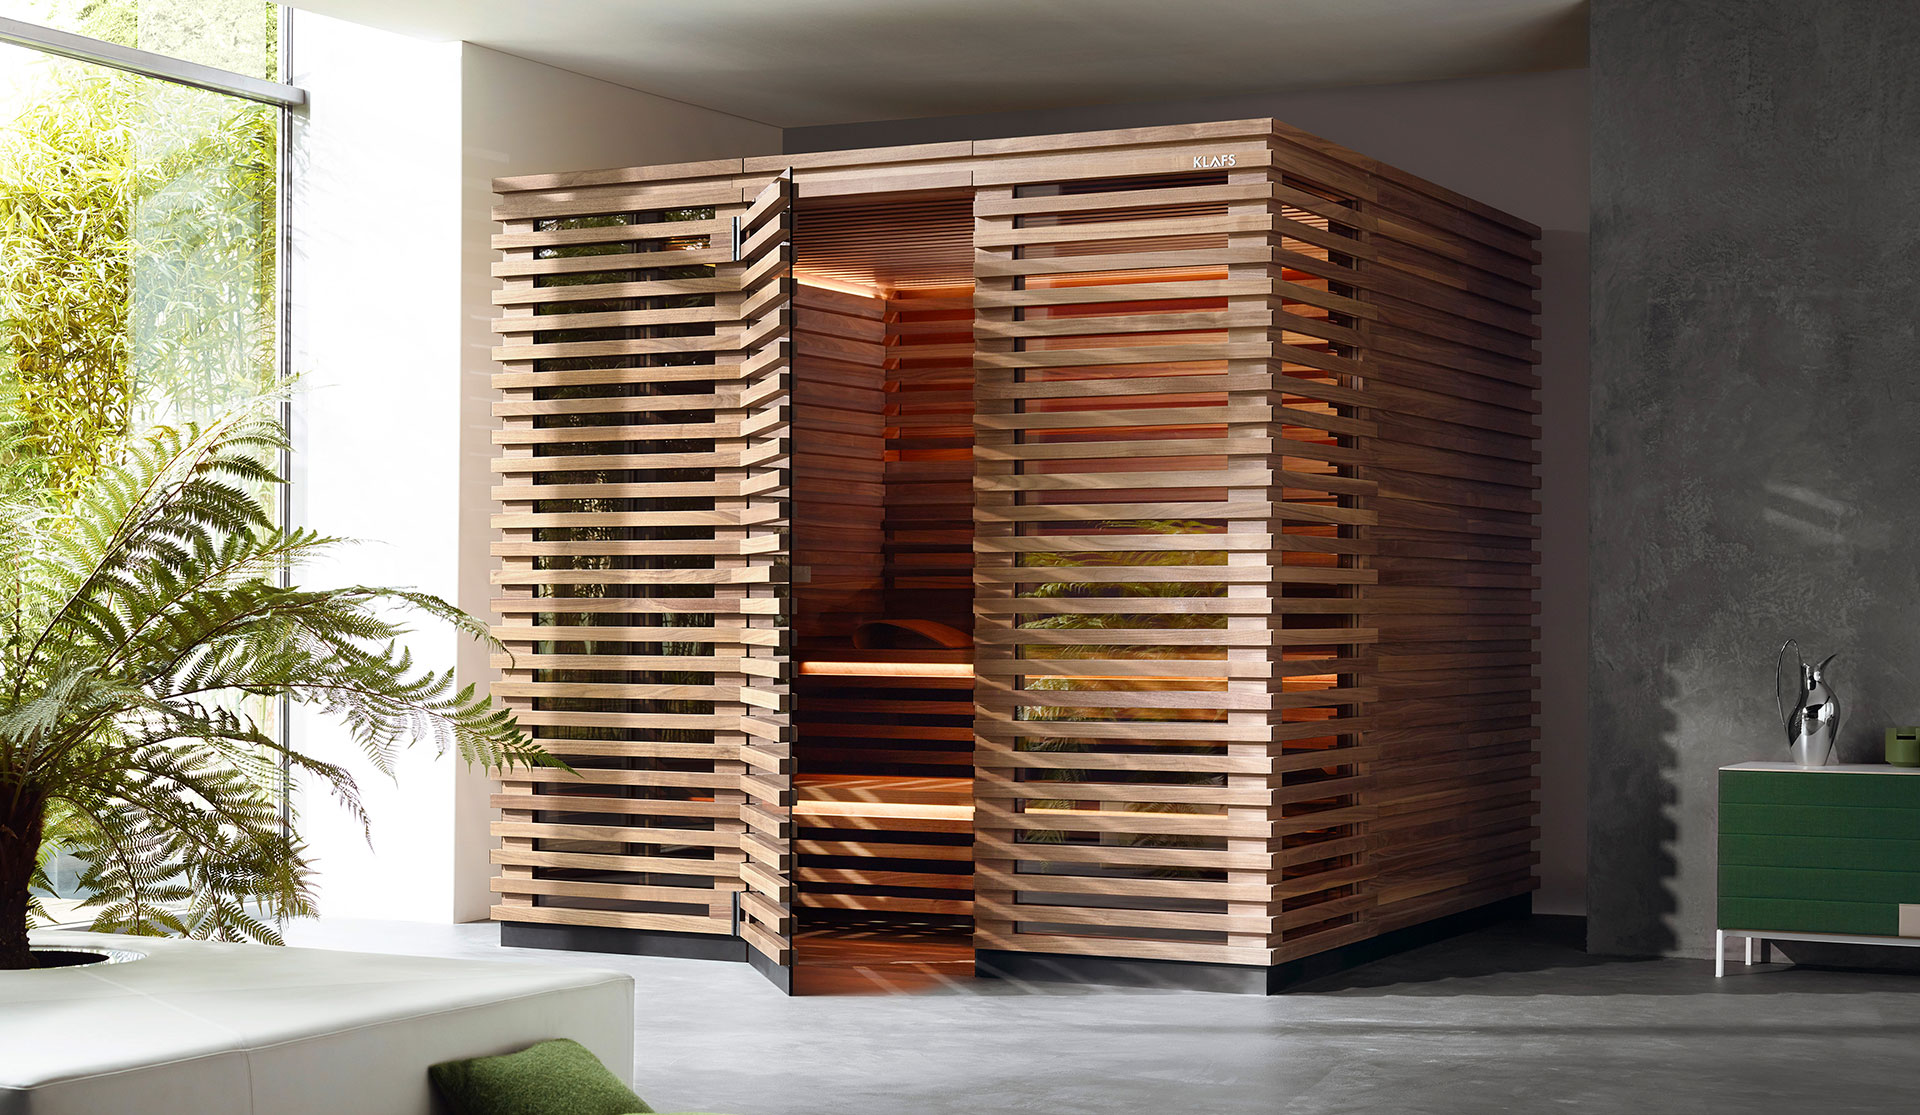 Klafs sauna, designed by Matteo Thun and Antonio Rodriguez